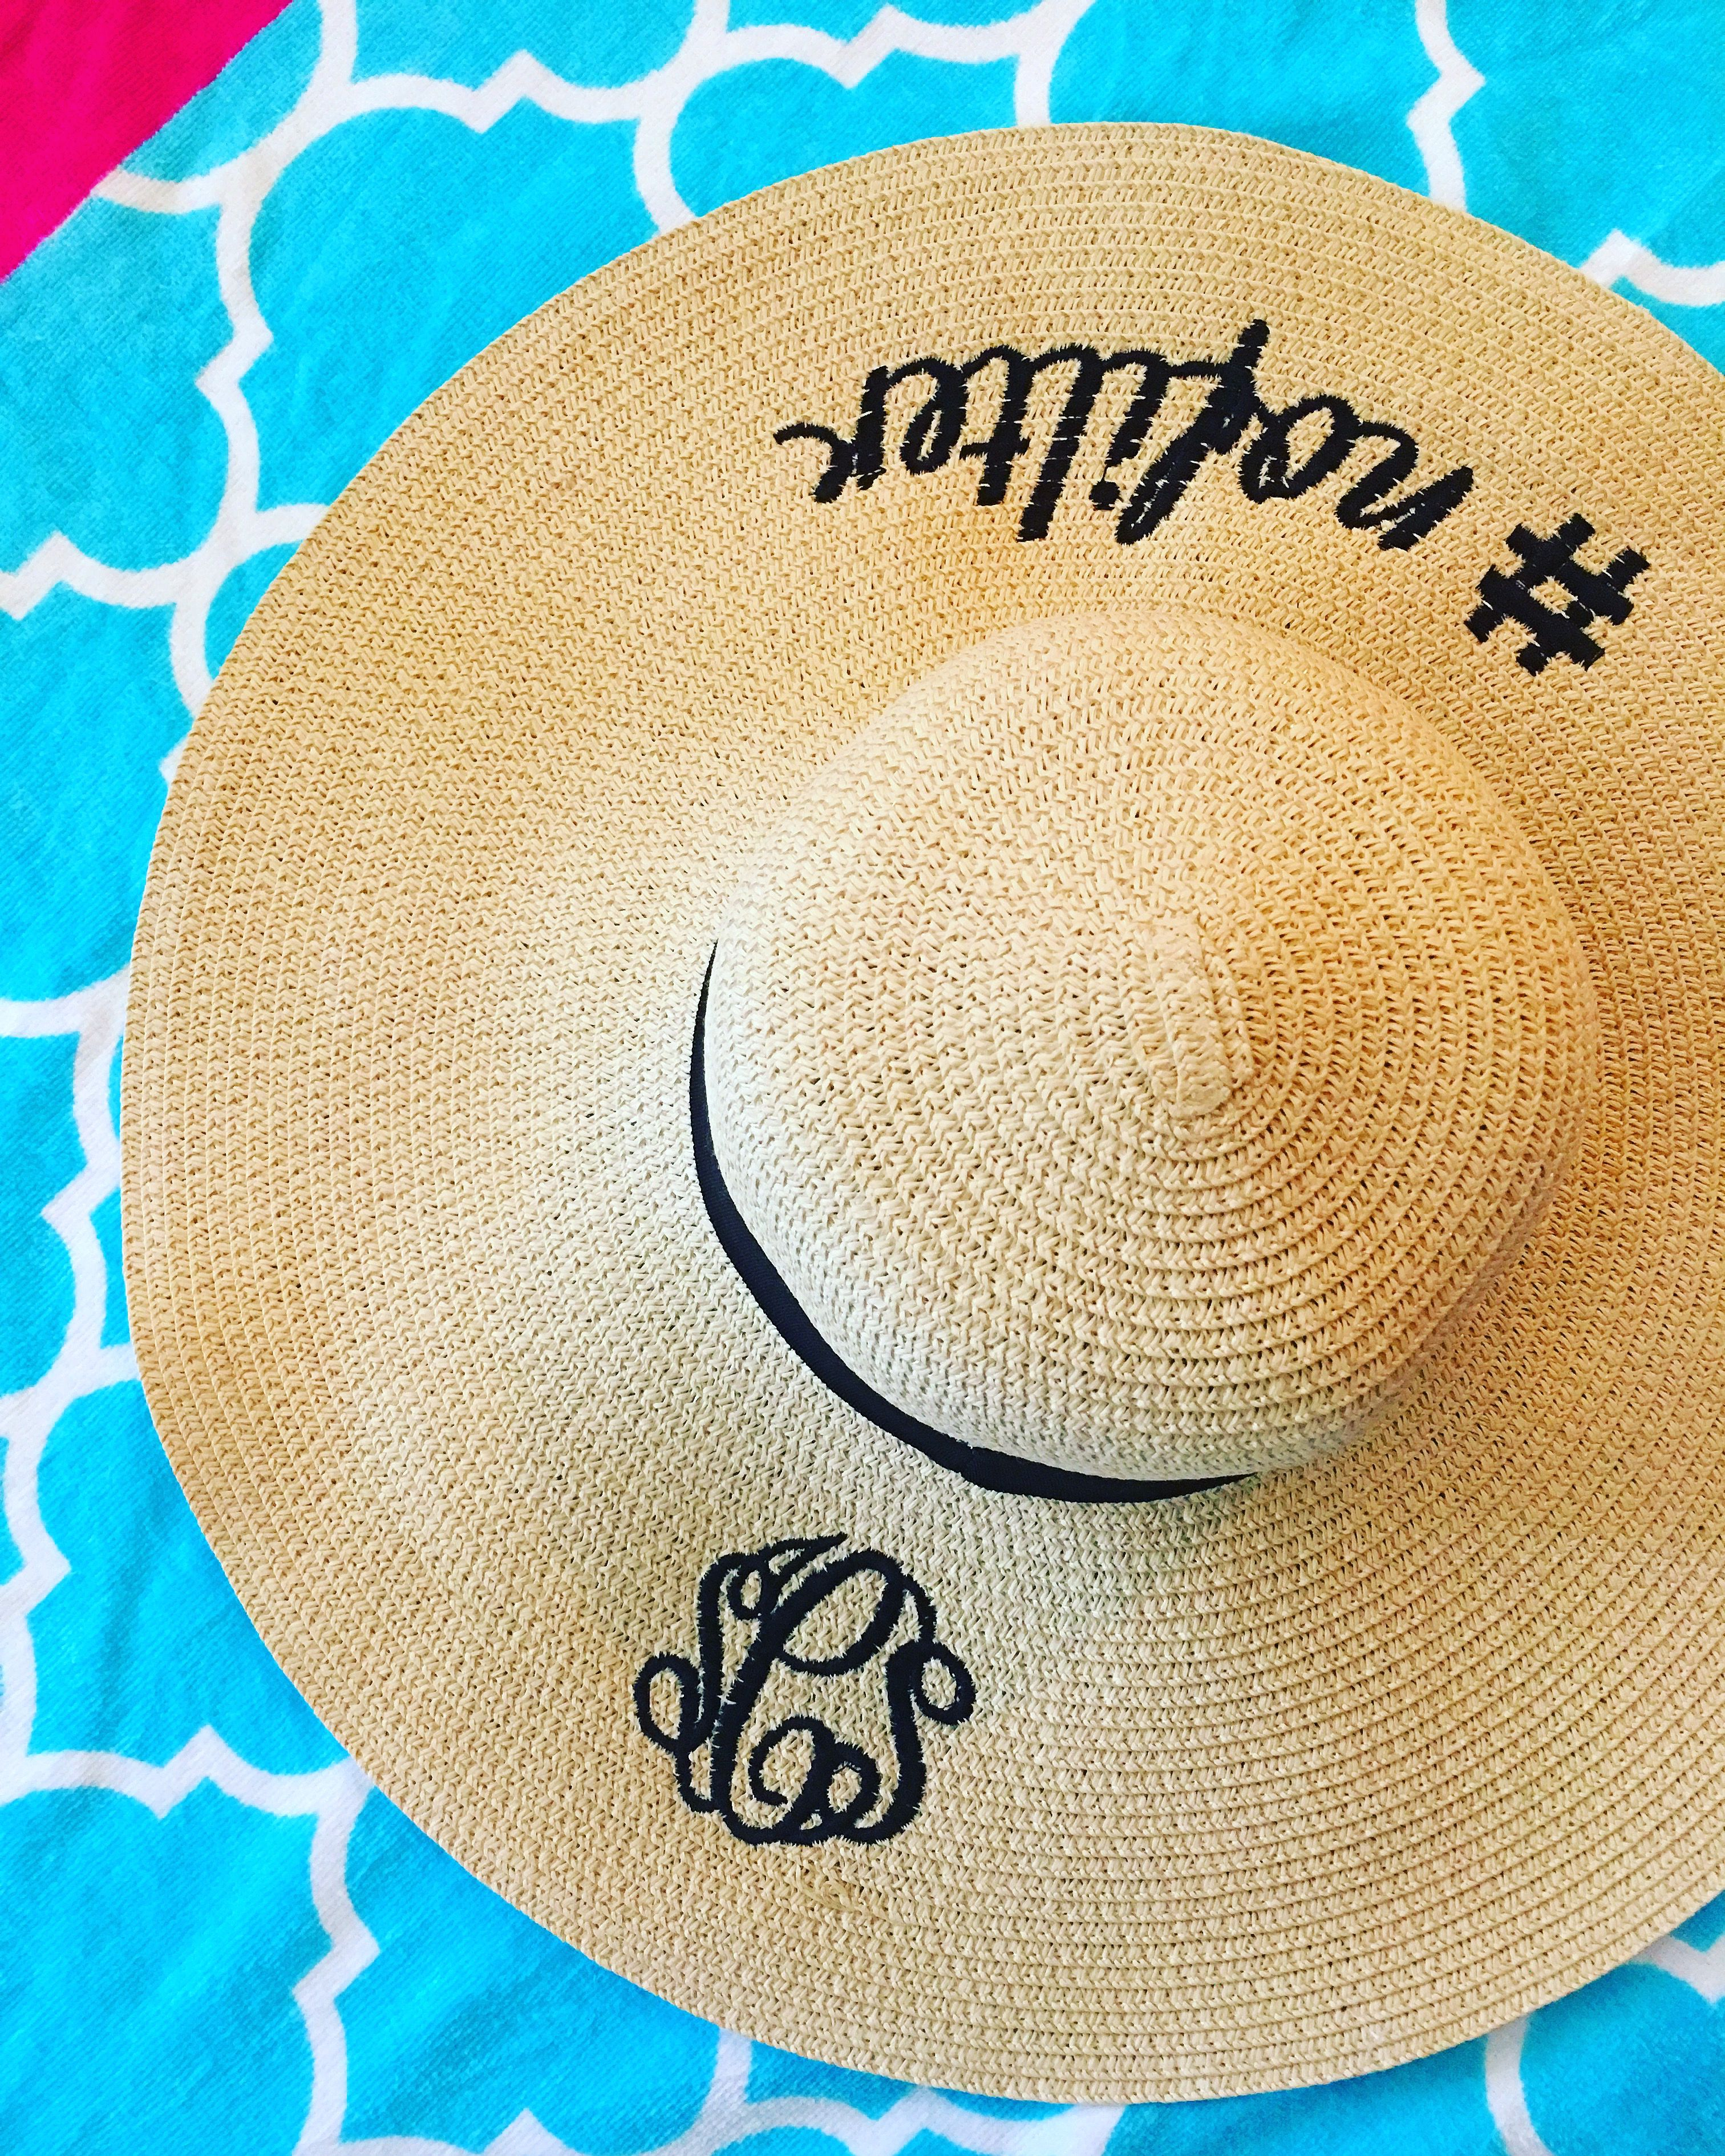 Monogrammed Sun Hats With Oh So Swell Slogans And Sayings